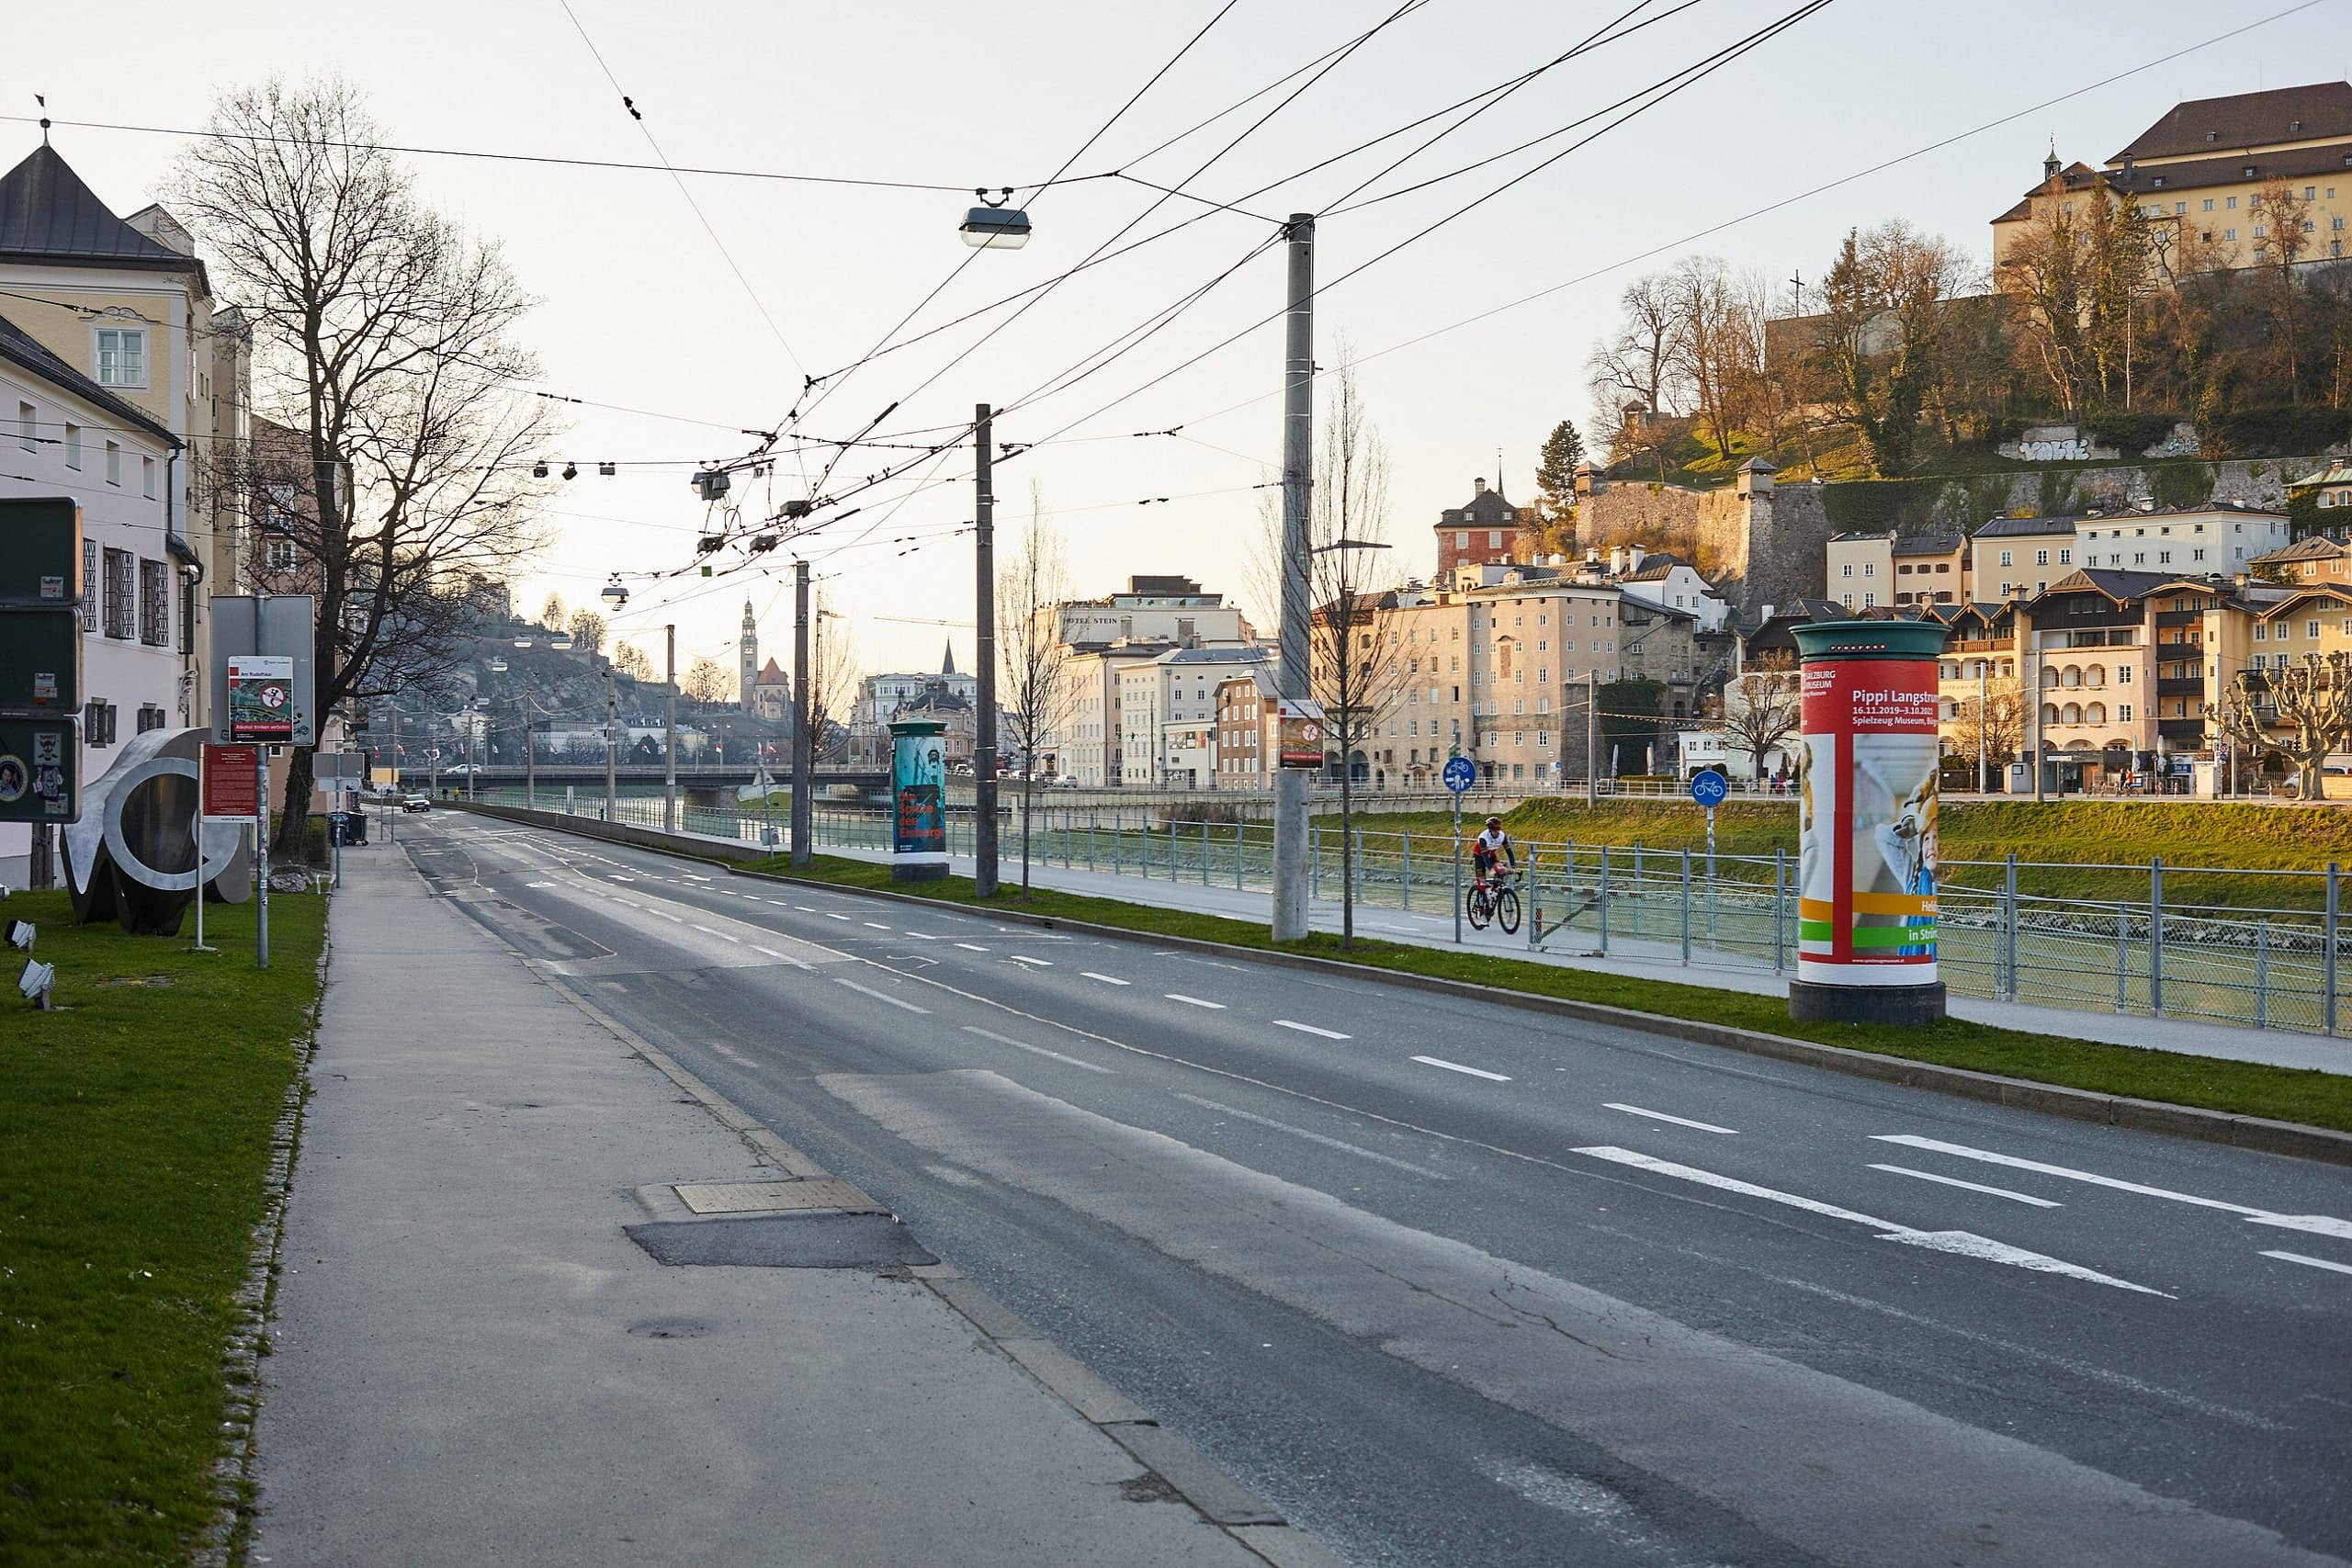 A photograph showing the empty Streets of Salzburg, Rudolfskai